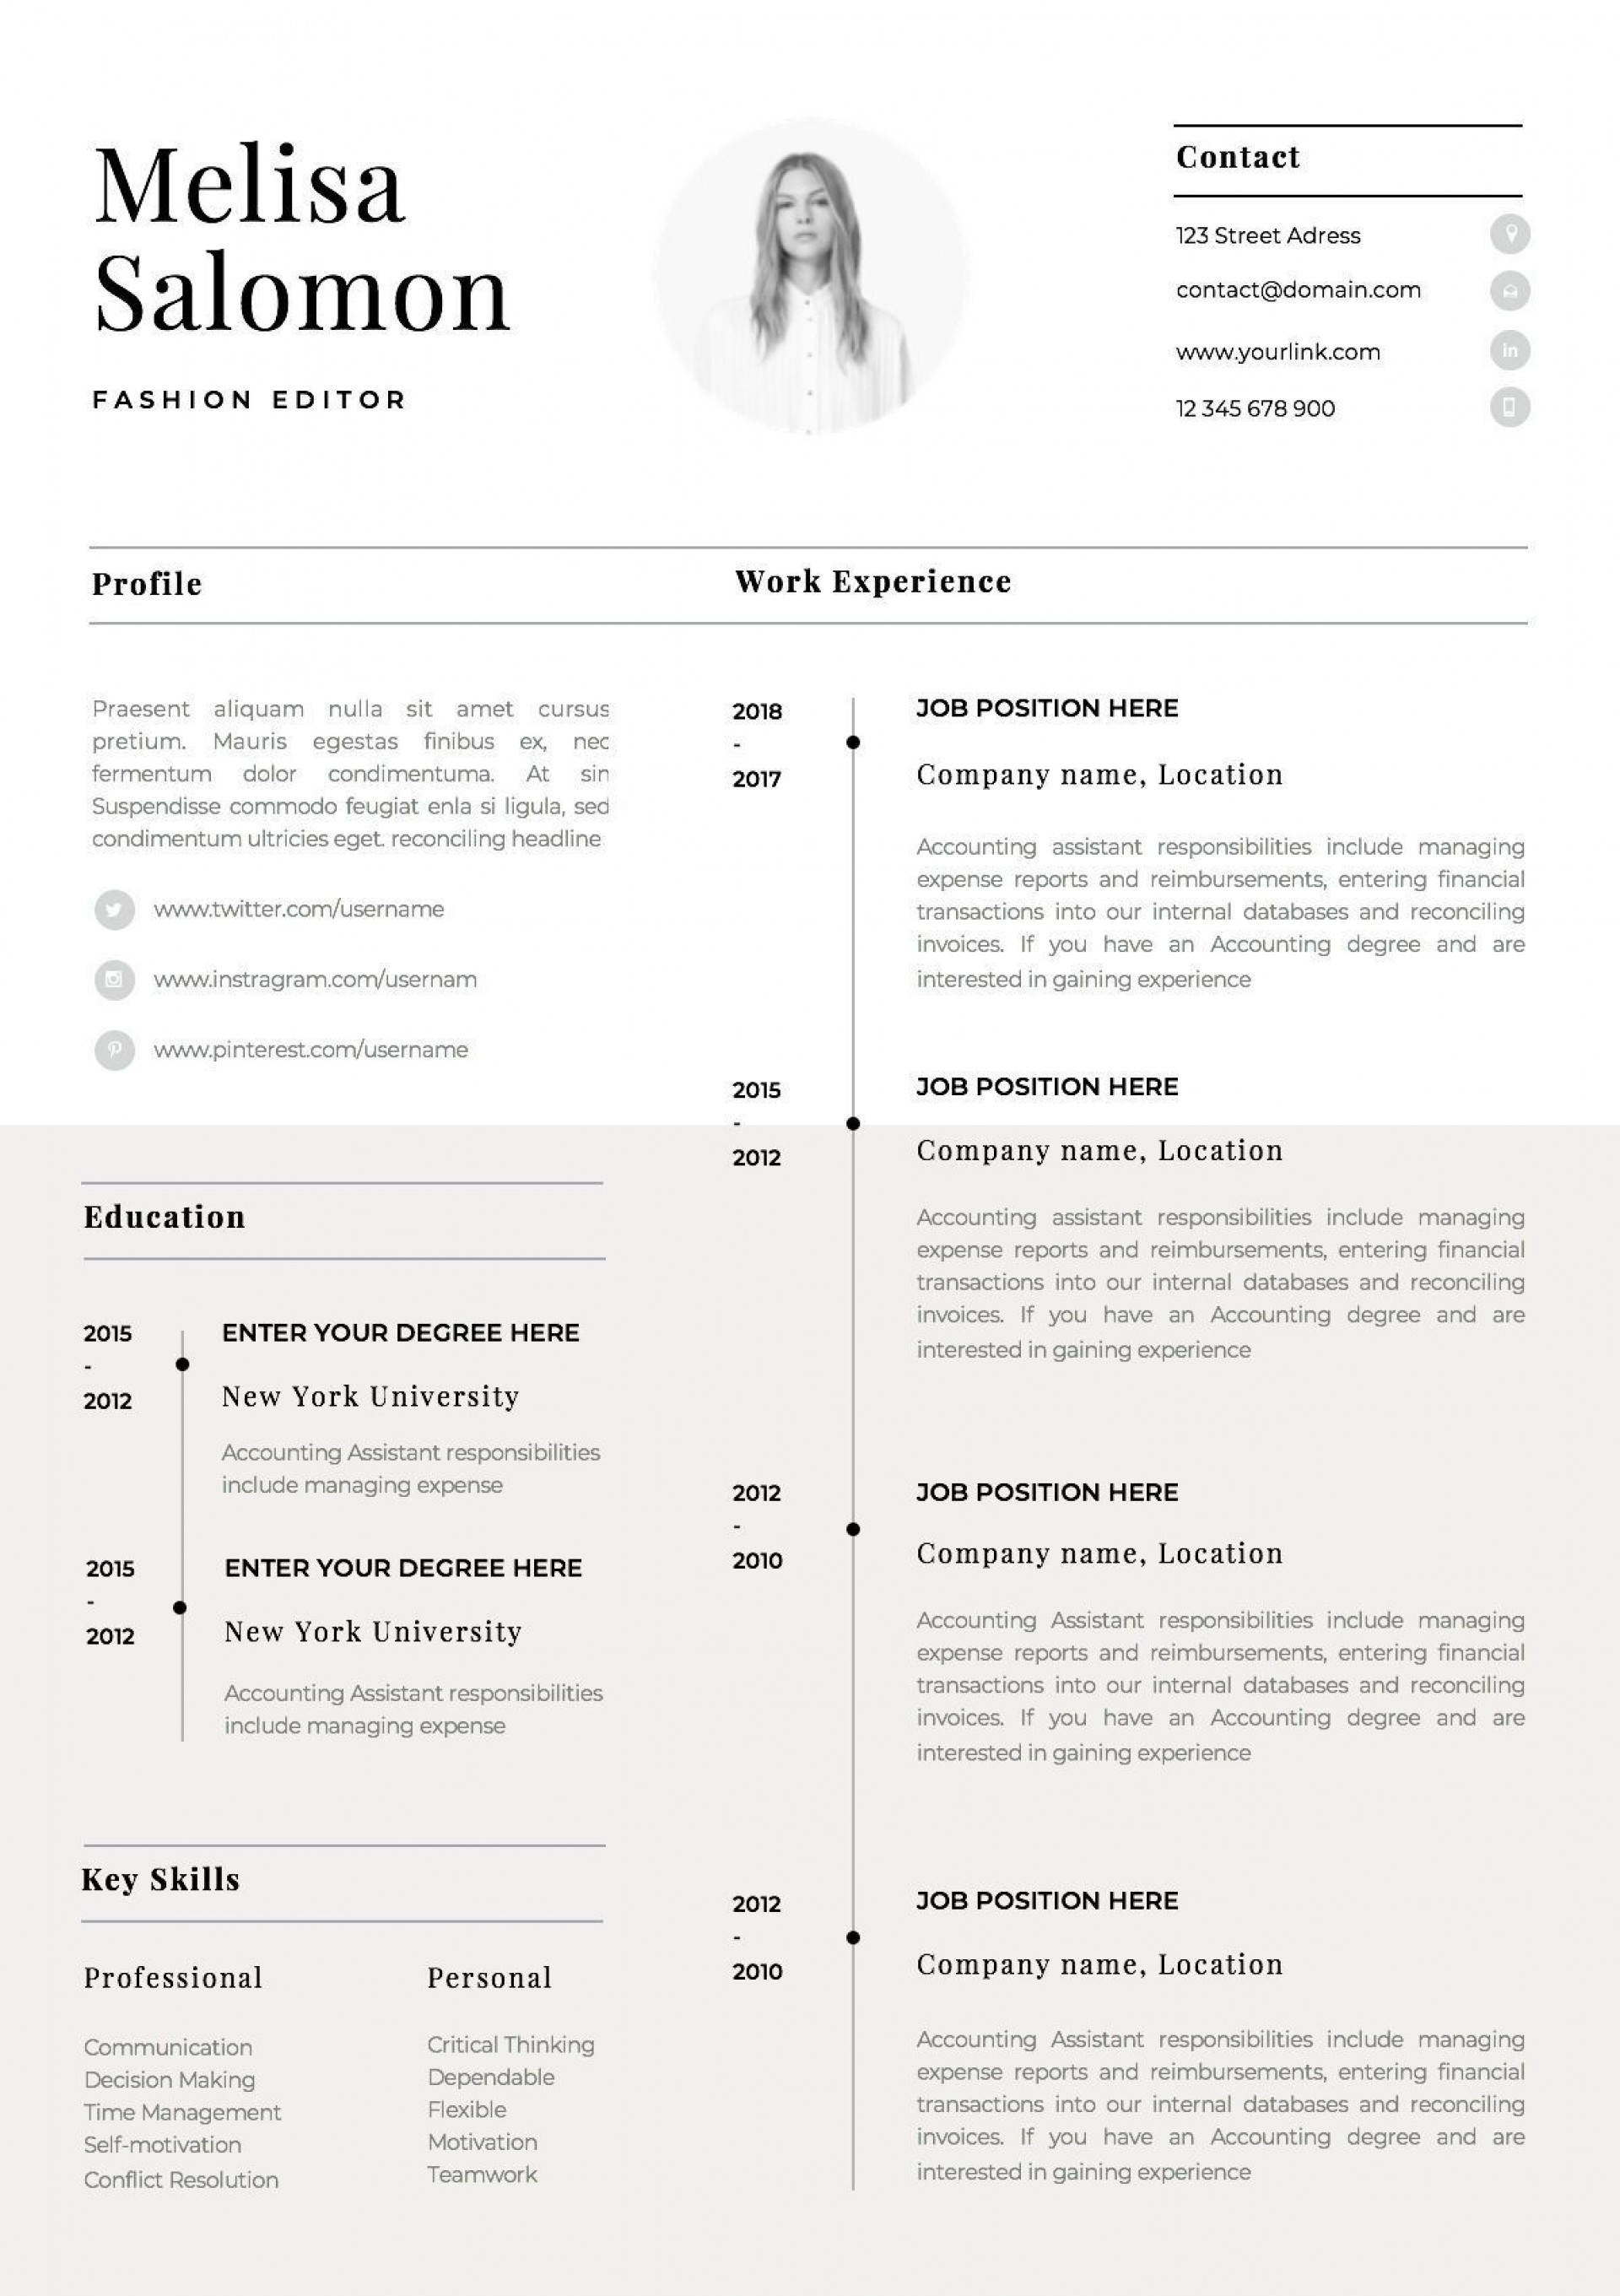 000 Rare Resume Template On Word High Def  Free Download Australia Microsoft Office 2007 Philippine1920